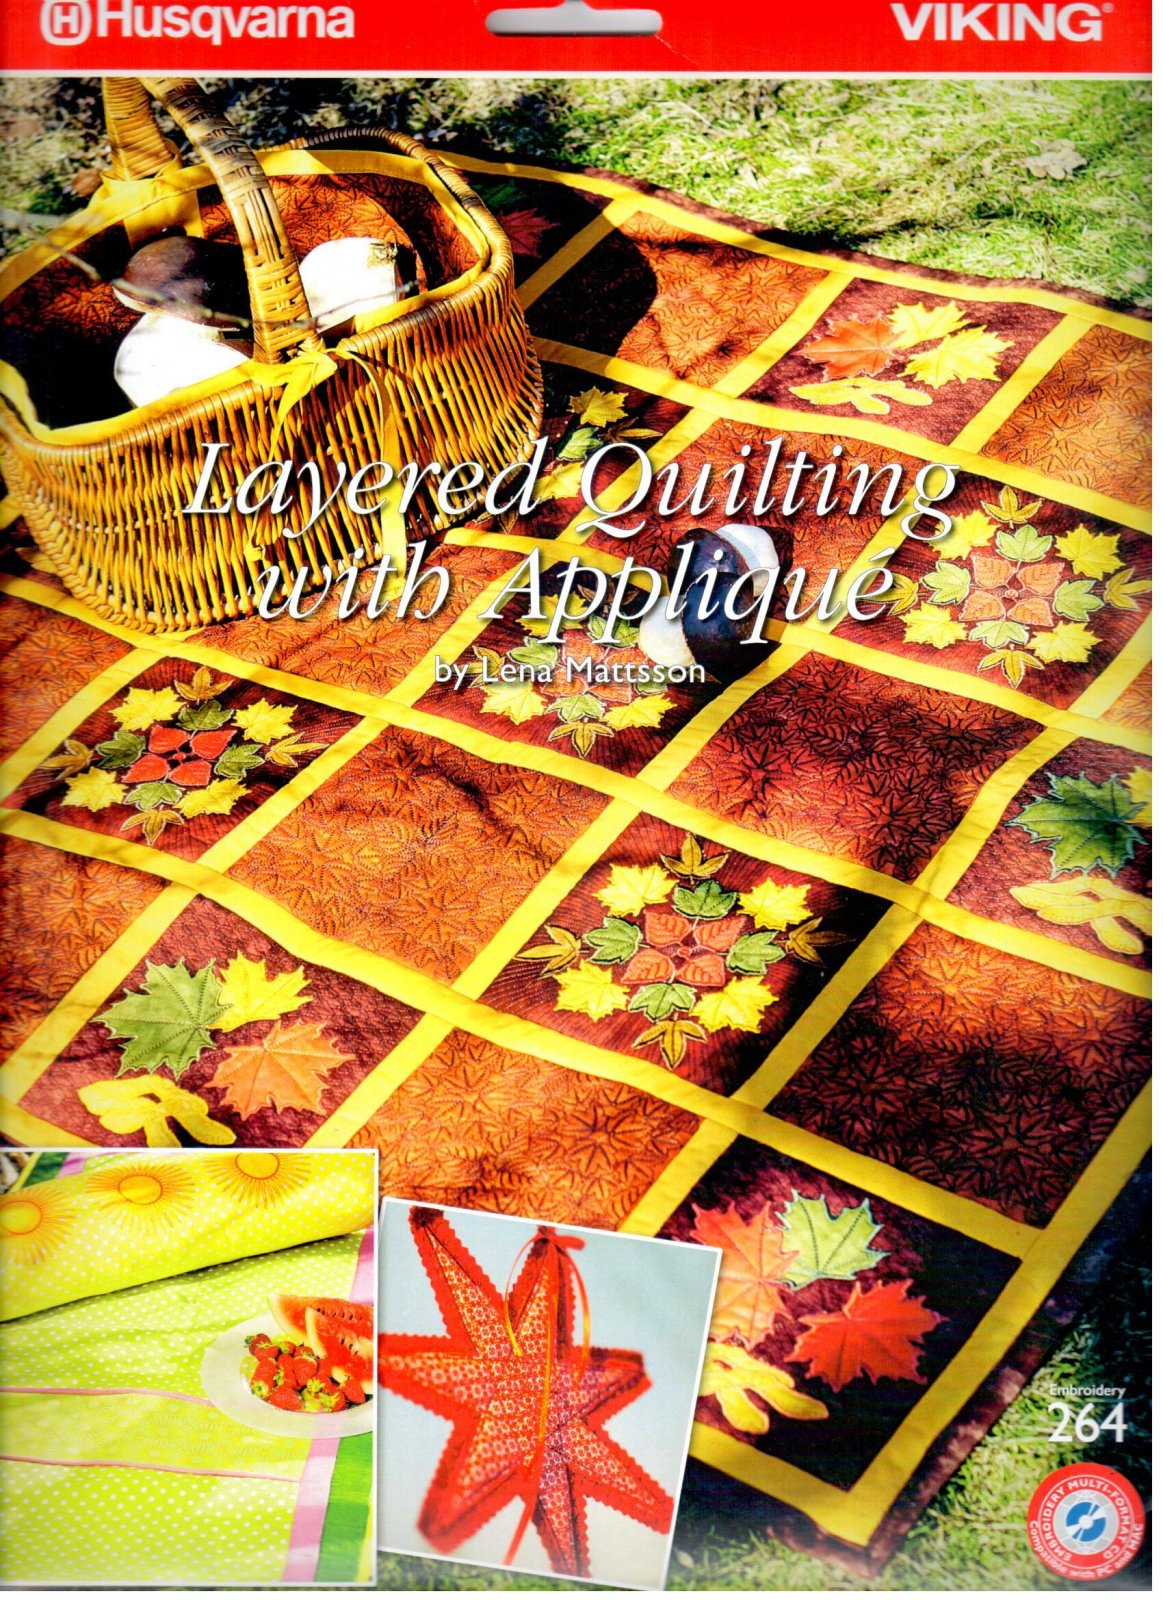 Layered Quilting with Applique #264